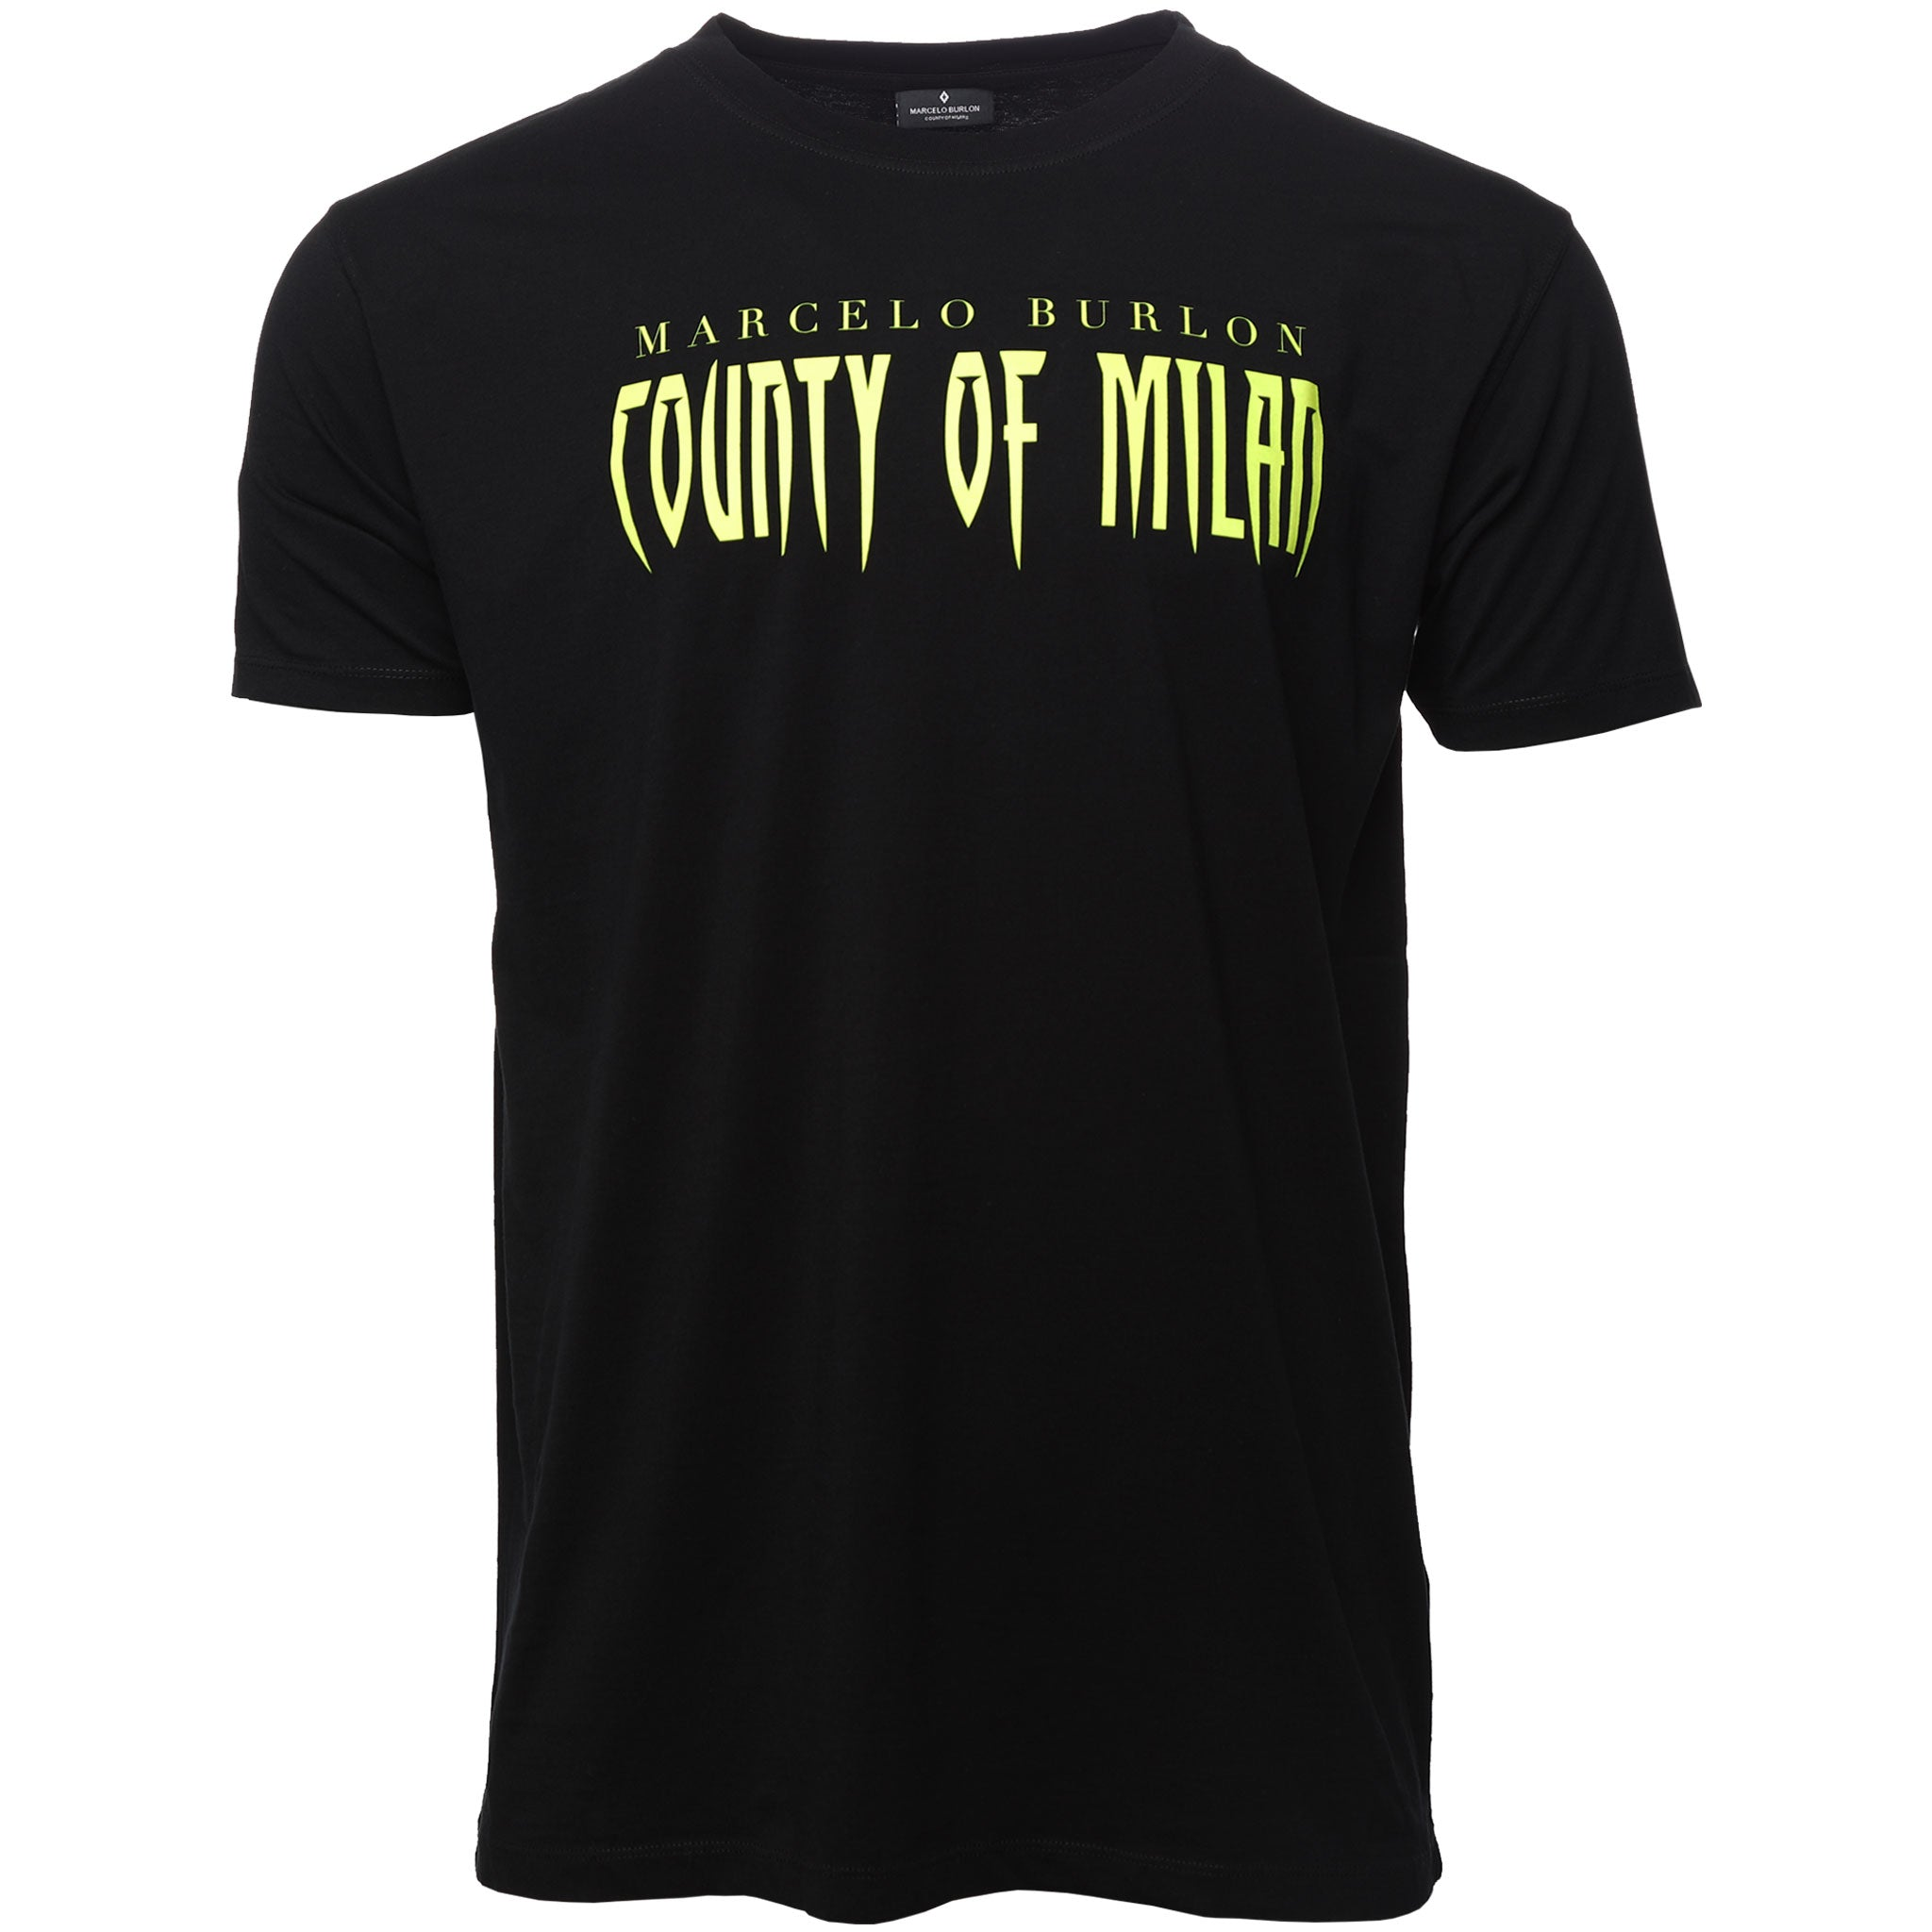 Marcelo Burlon County of Milan Black Sleepwalker T-Shirt Front New Guards Group